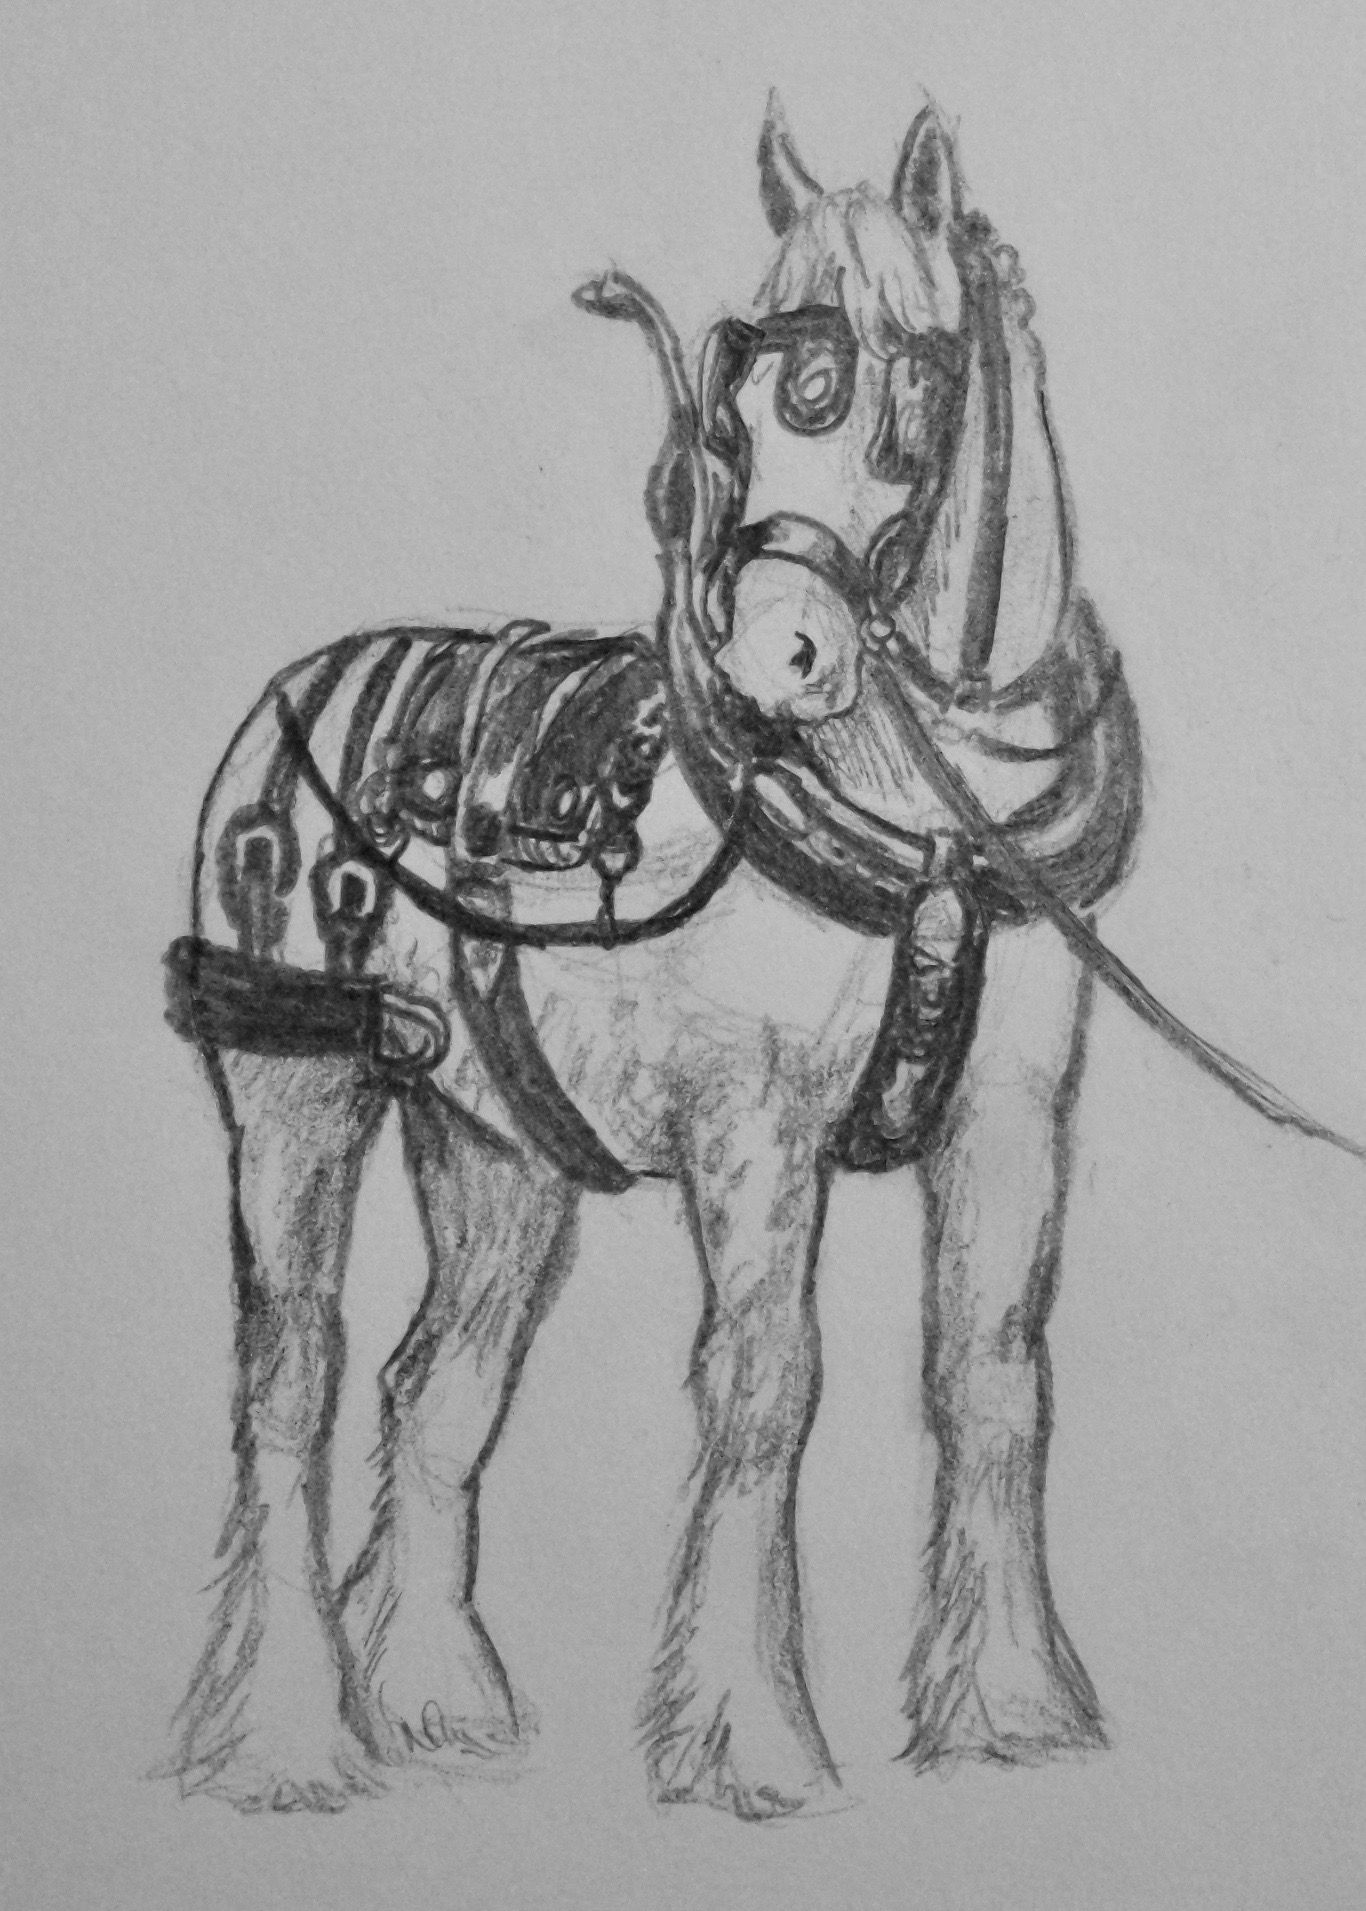 Draft Horse In Harness Pencil Drawing By Hannah Thuemmel 2017 Horse Art Drawing Horse Drawings Horse Drawing [ 1911 x 1366 Pixel ]